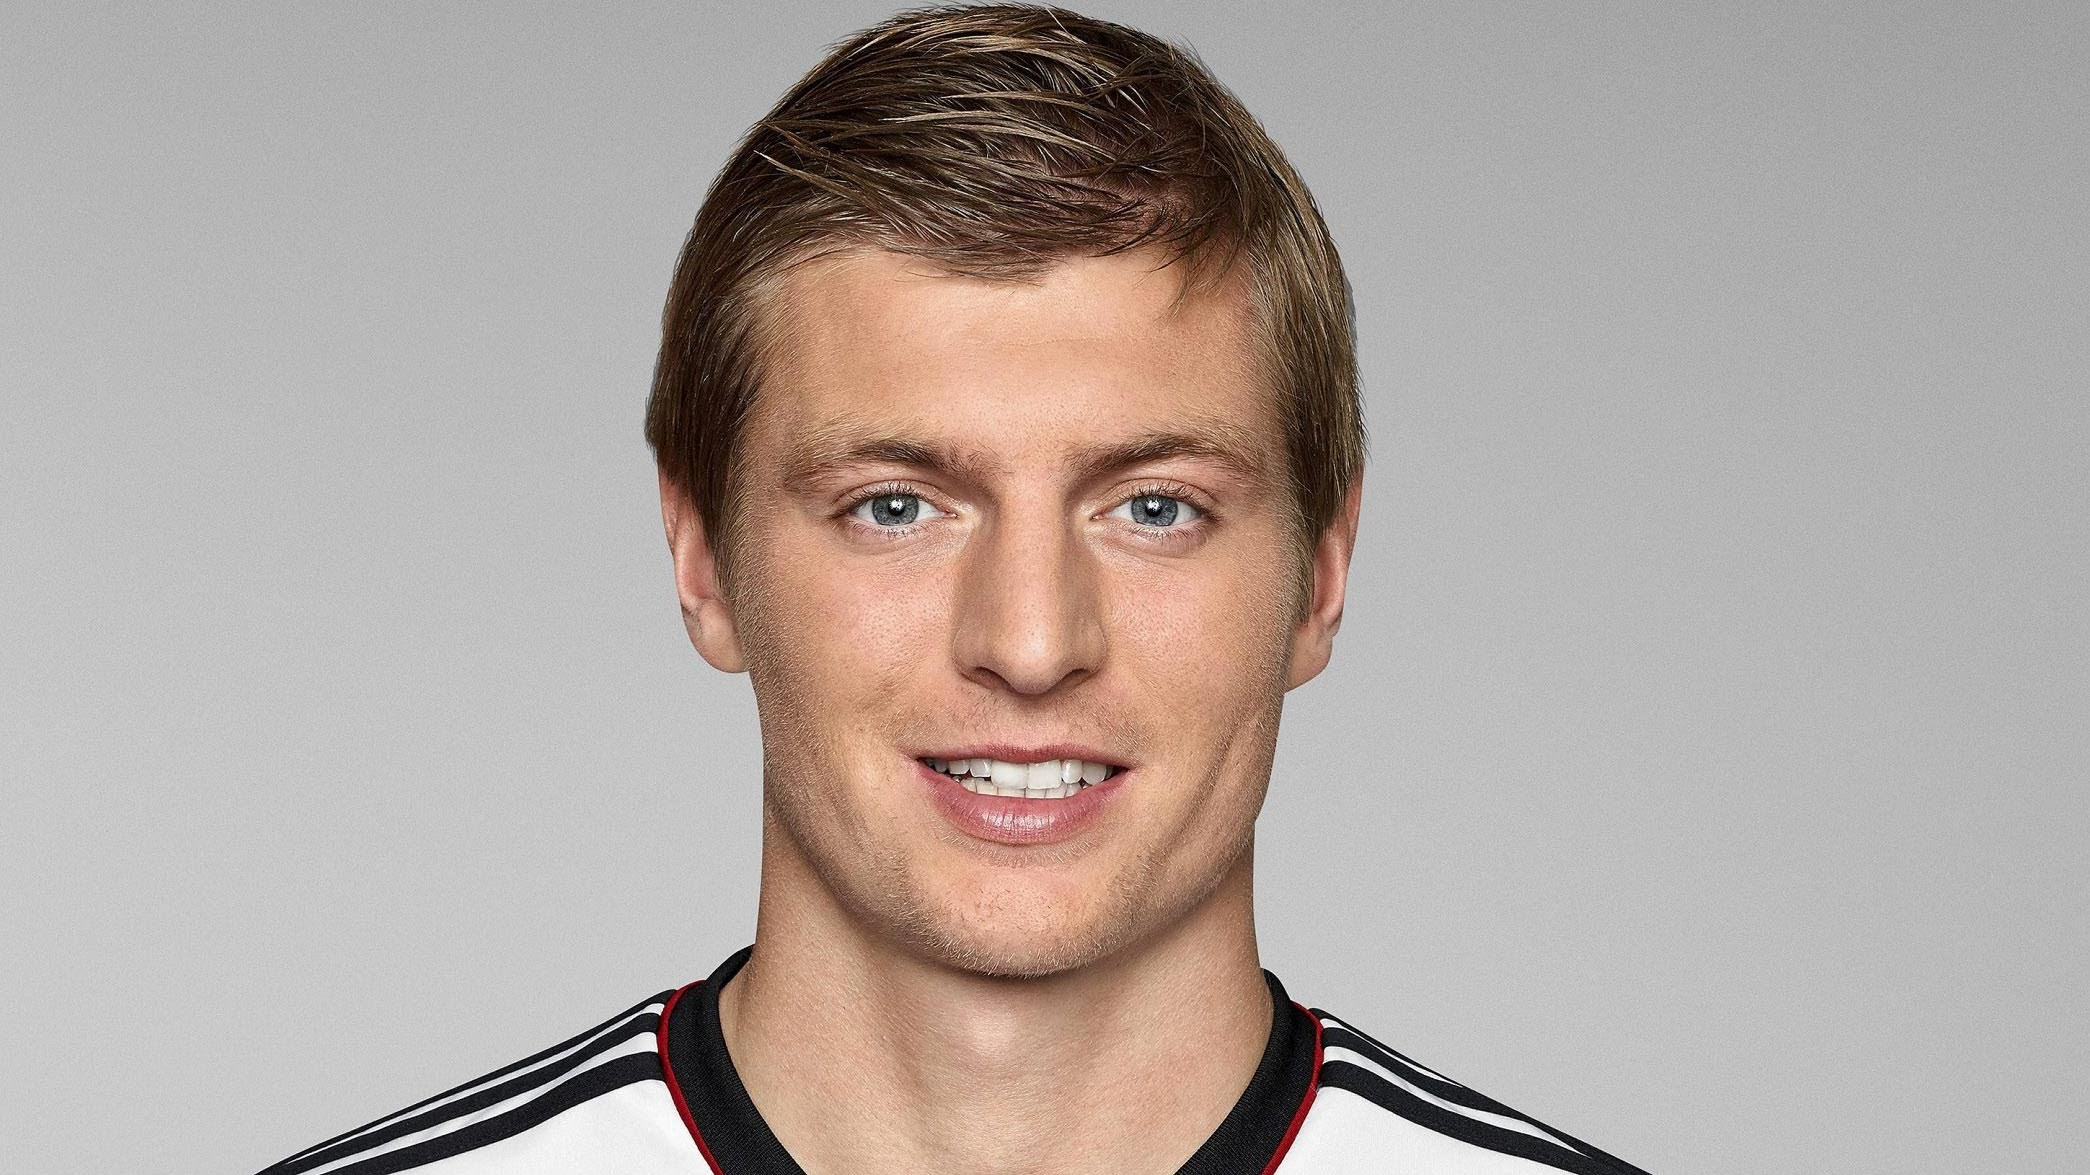 Toni Kroos Football Soccer Player Free Mobile Hq Background Desktop Pictures